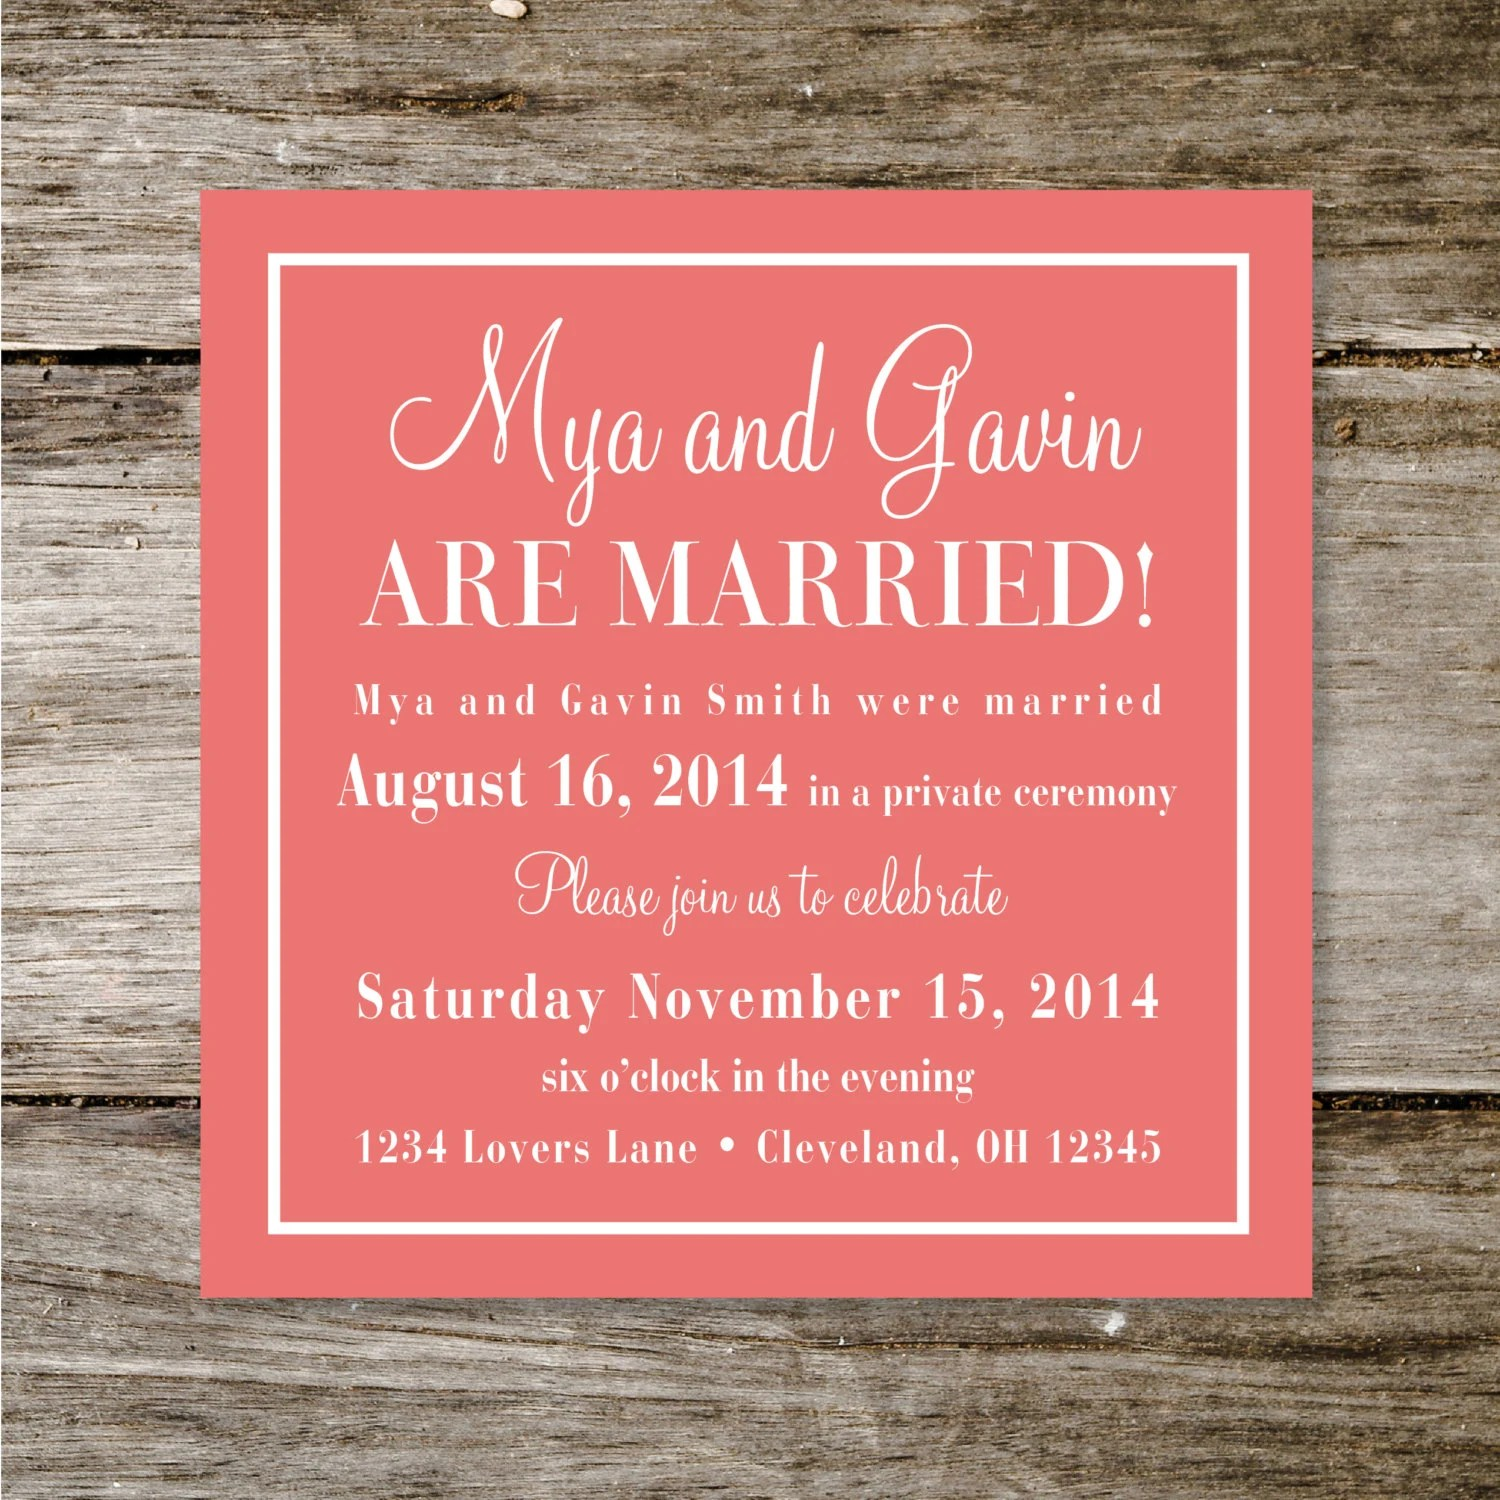 Marriage Announcement Wording